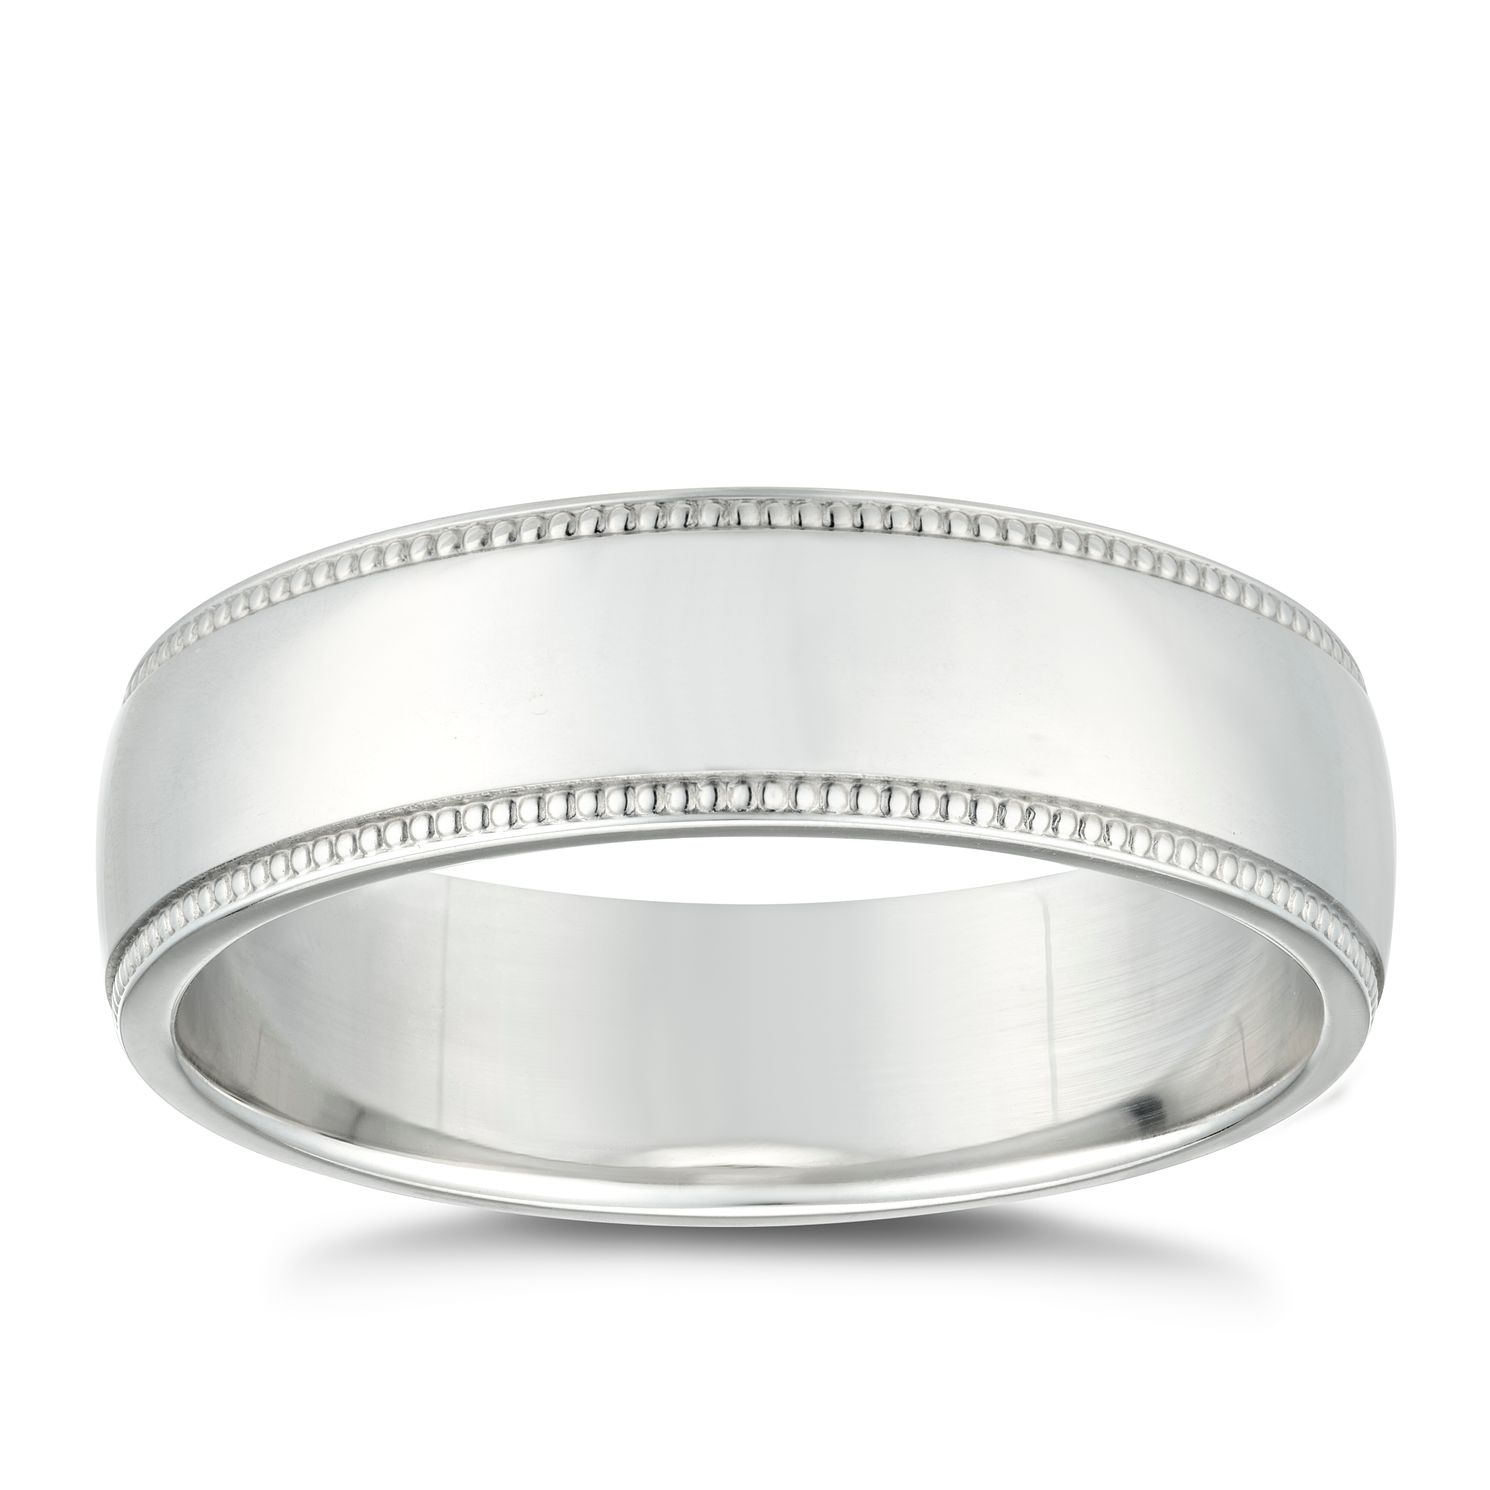 Silver Polished 6mm Men's Milgrain Edge Ring - Product number 4937635